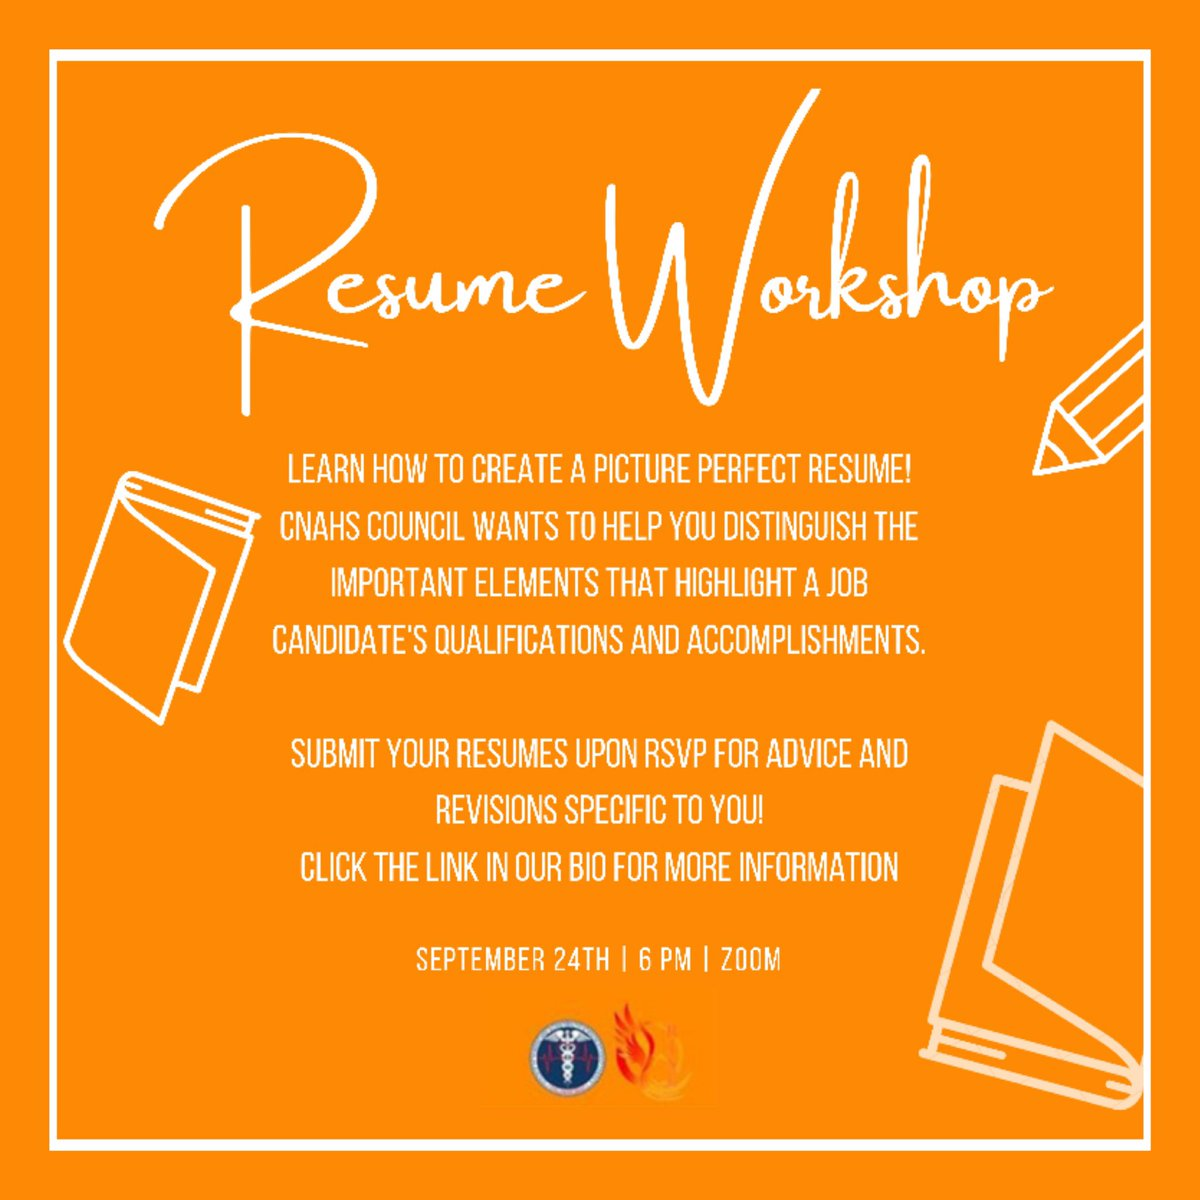 Get ready to have the picture perfect resume 📸 Join CNAHS Council as our E-Board gives you the building blocks to create a resume that will make your next applications spark⚡️ RSVP through the link in our bio. You don't want to miss this!